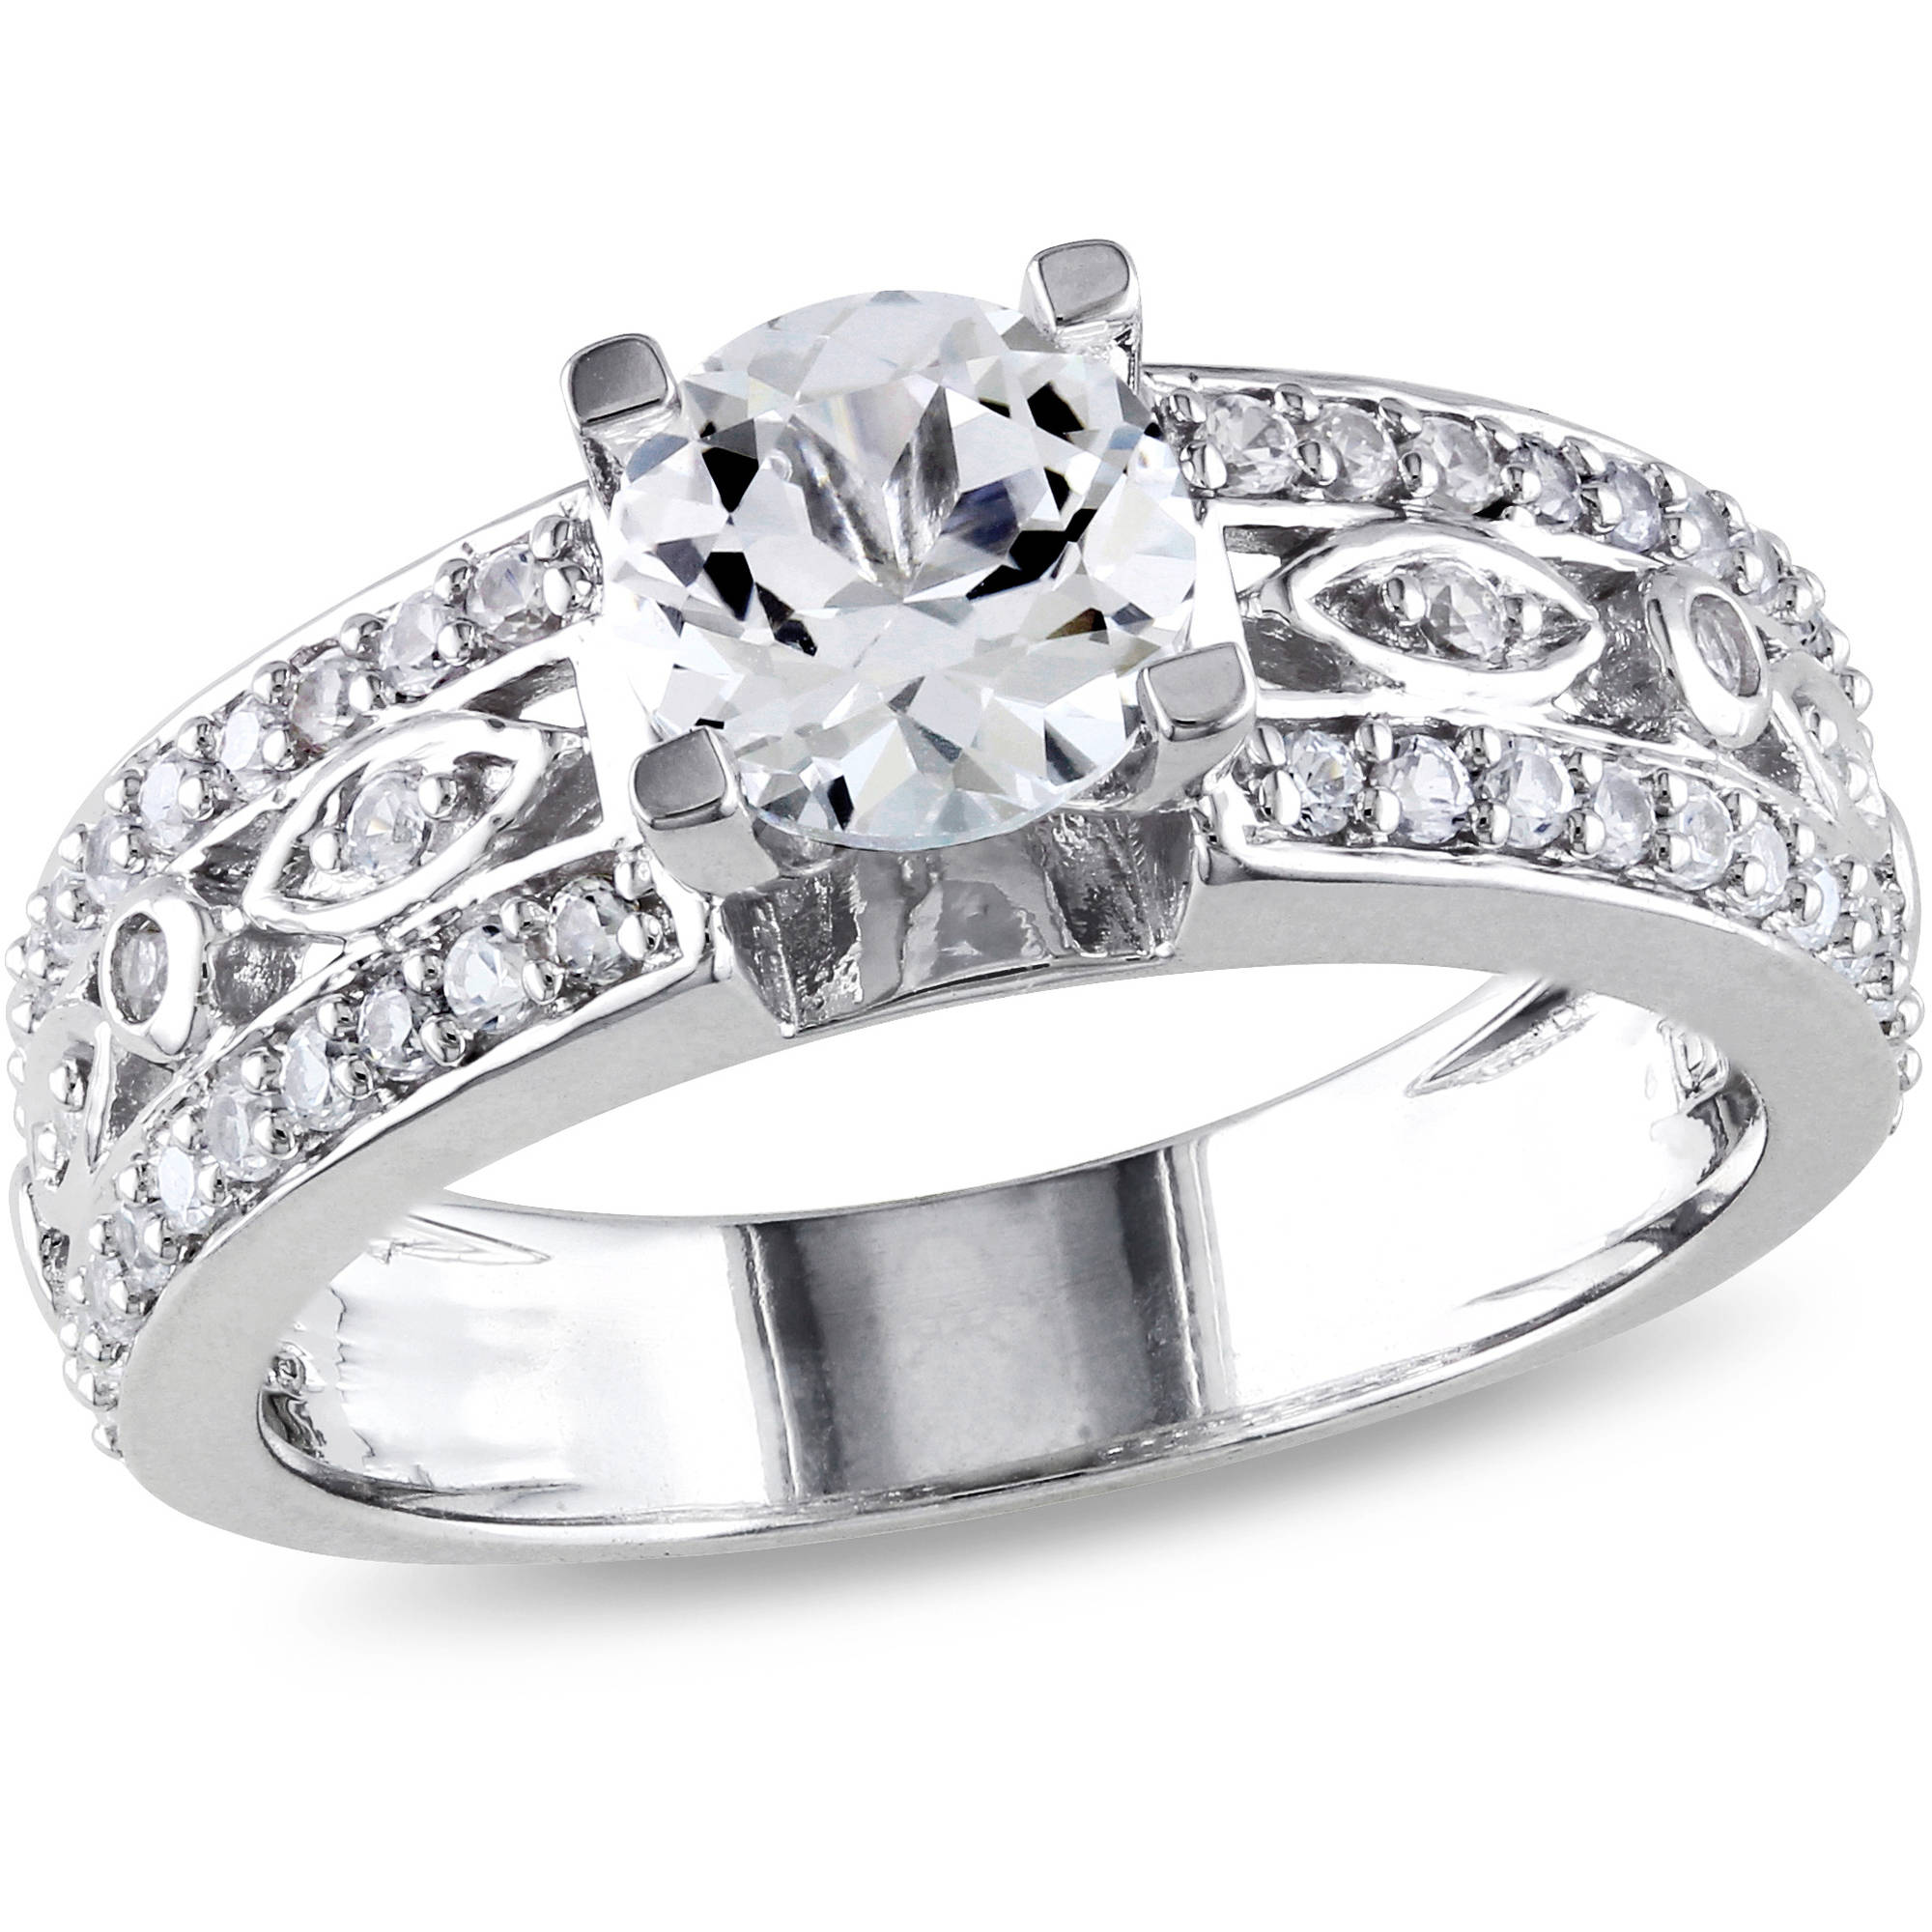 Miabella 1-7/8 Carat T.G.W. White Sapphire Sterling Silver Filigree Engagement Ring